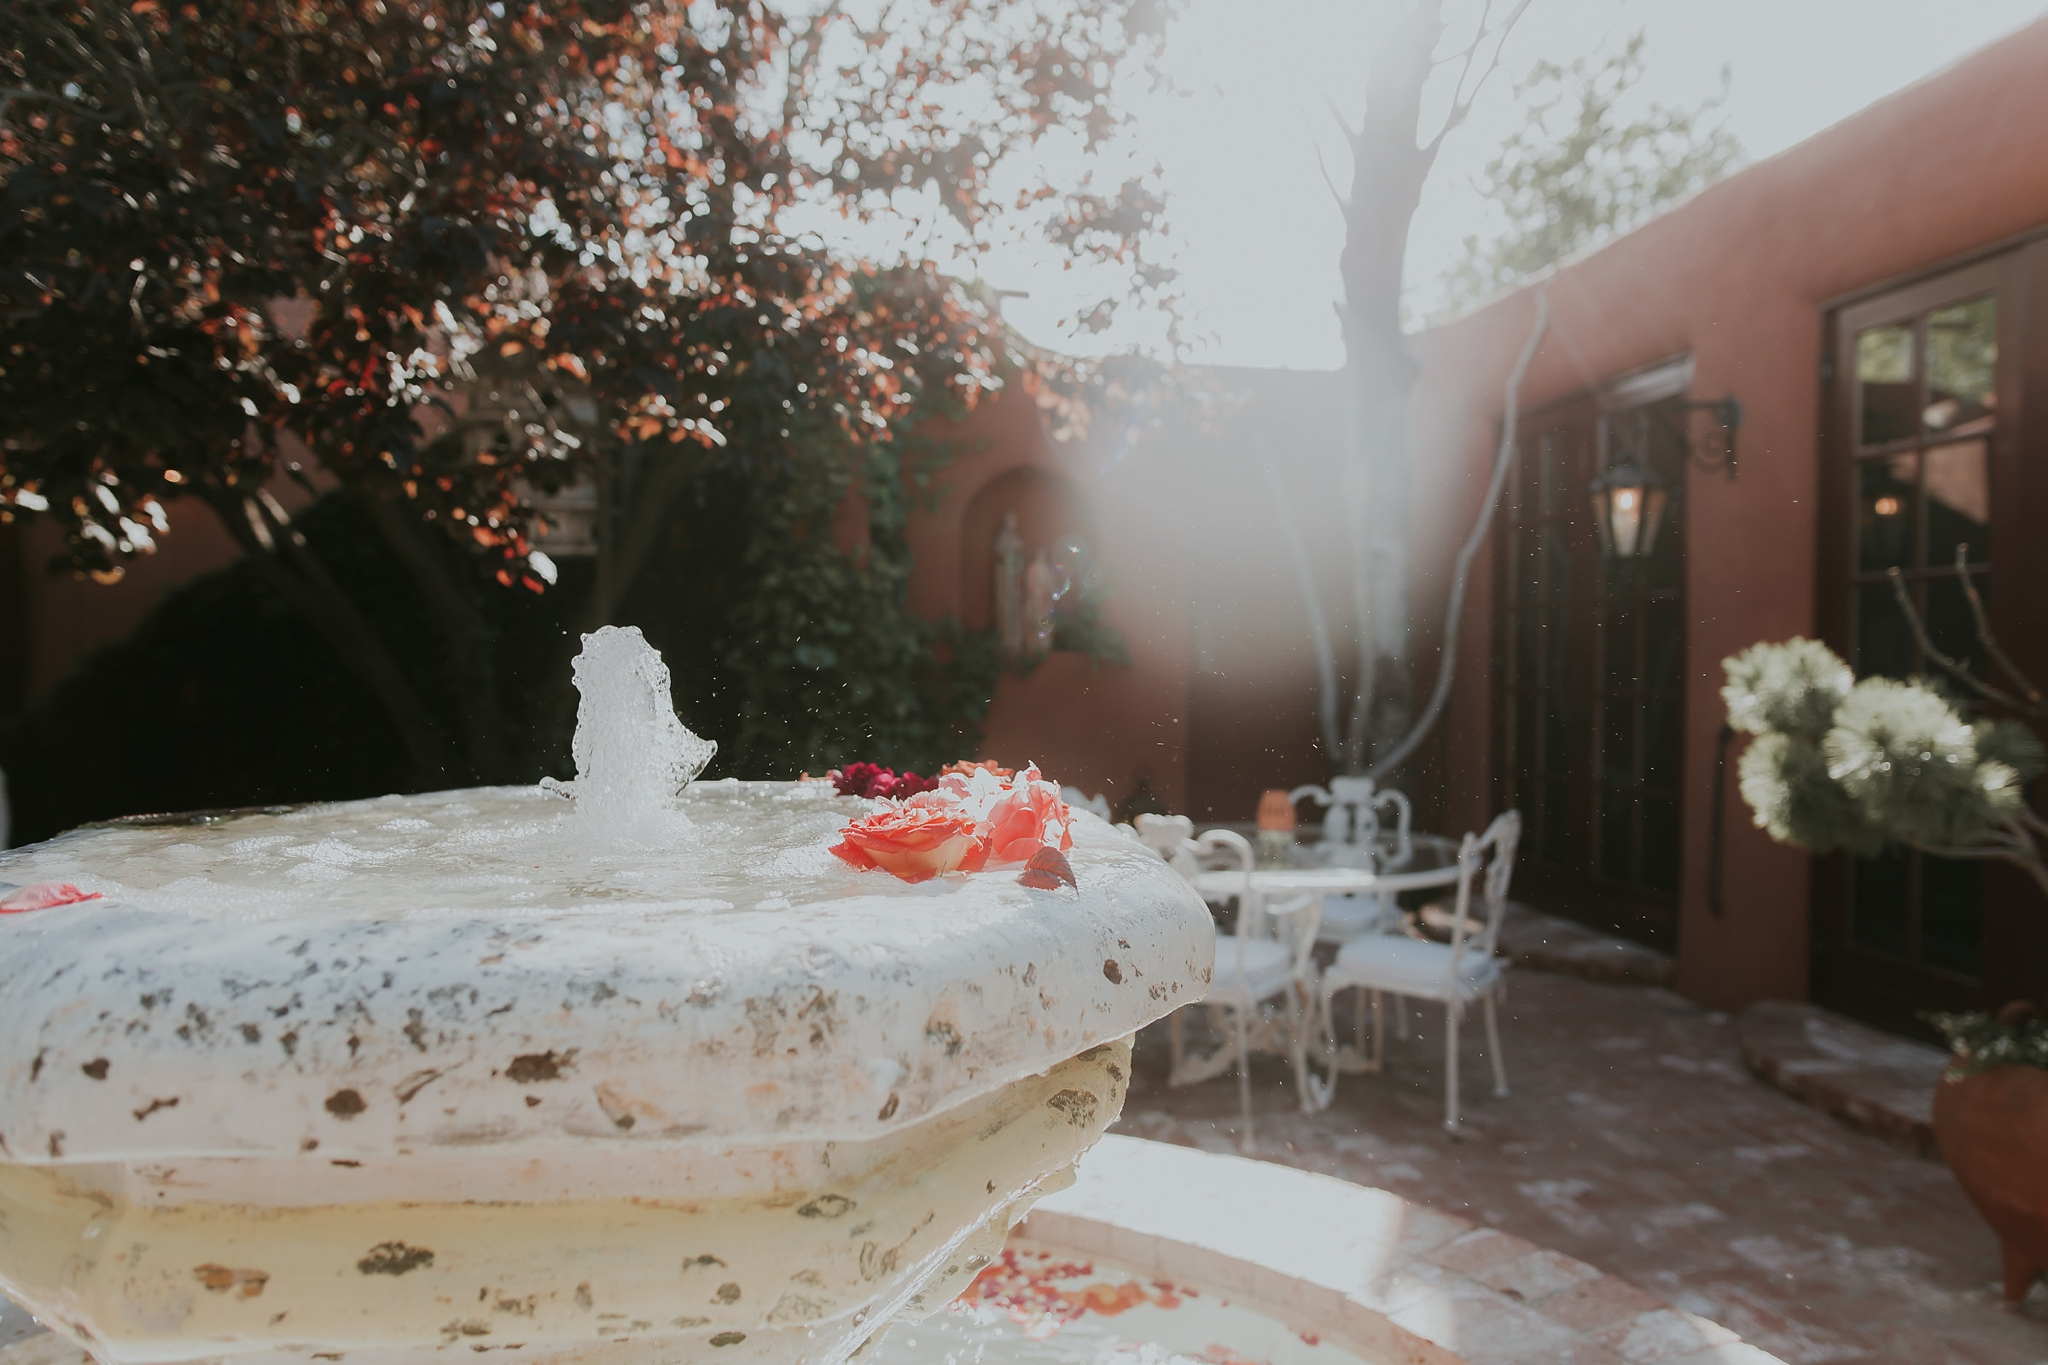 Alicia+lucia+photography+-+albuquerque+wedding+photographer+-+santa+fe+wedding+photography+-+new+mexico+wedding+photographer+-+new+mexico+wedding+-+wedding+venues+-+new+mexico+wedding+venues+-+colorado+wedding+venues_0096.jpg